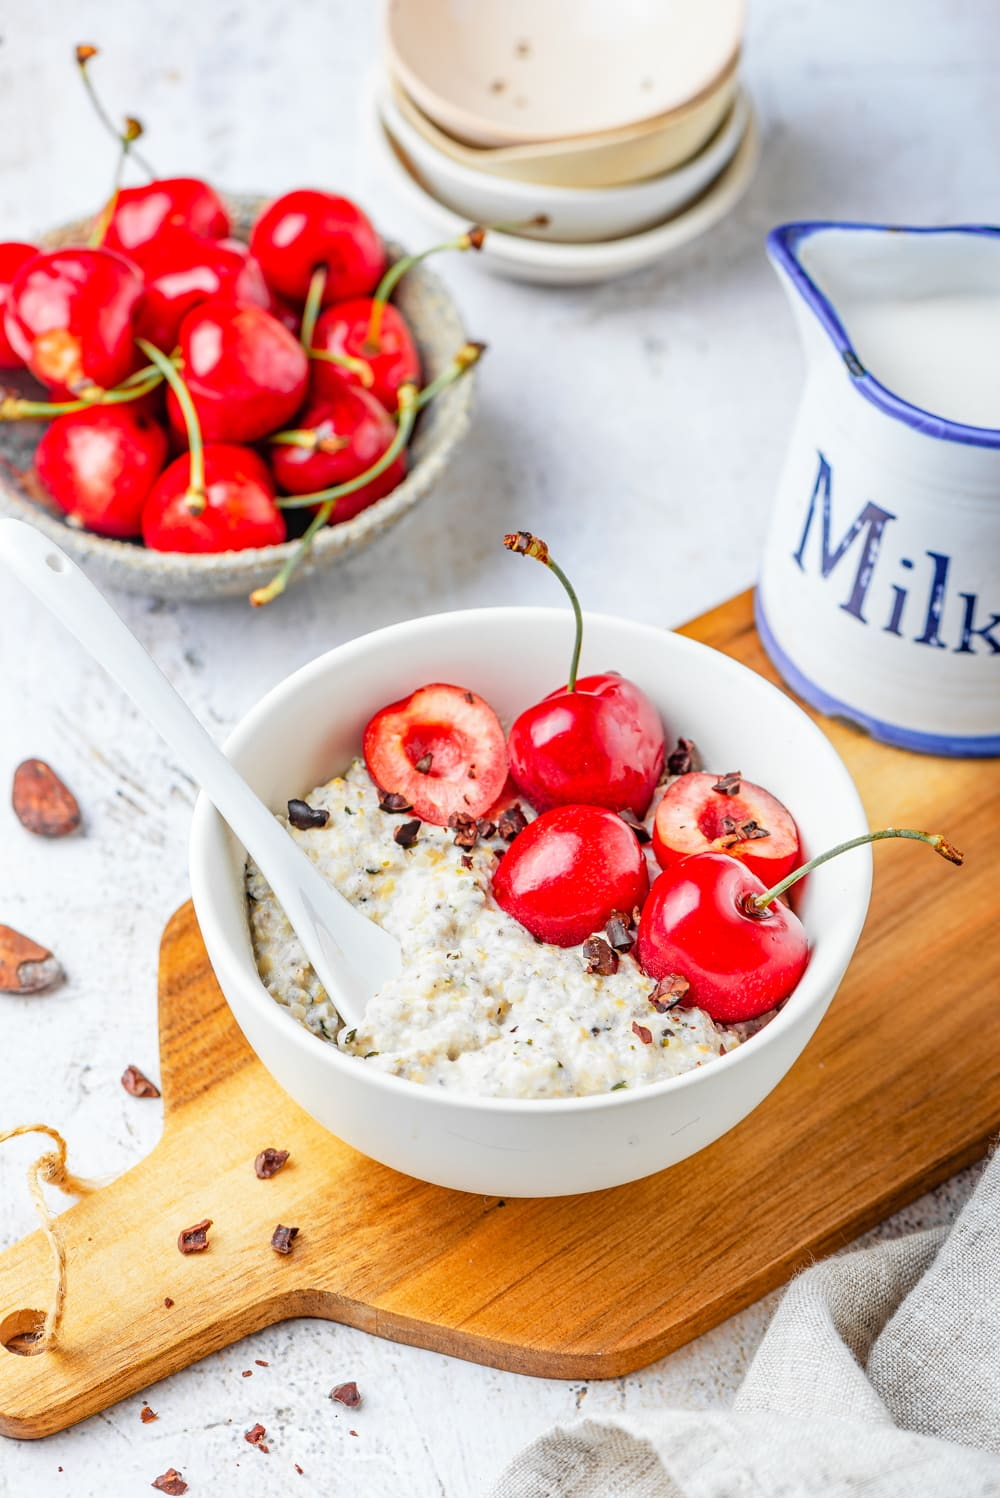 A white bowl filled with oats, bits of low carb chocolate, and cherries on a cutting board that's set on a white table.